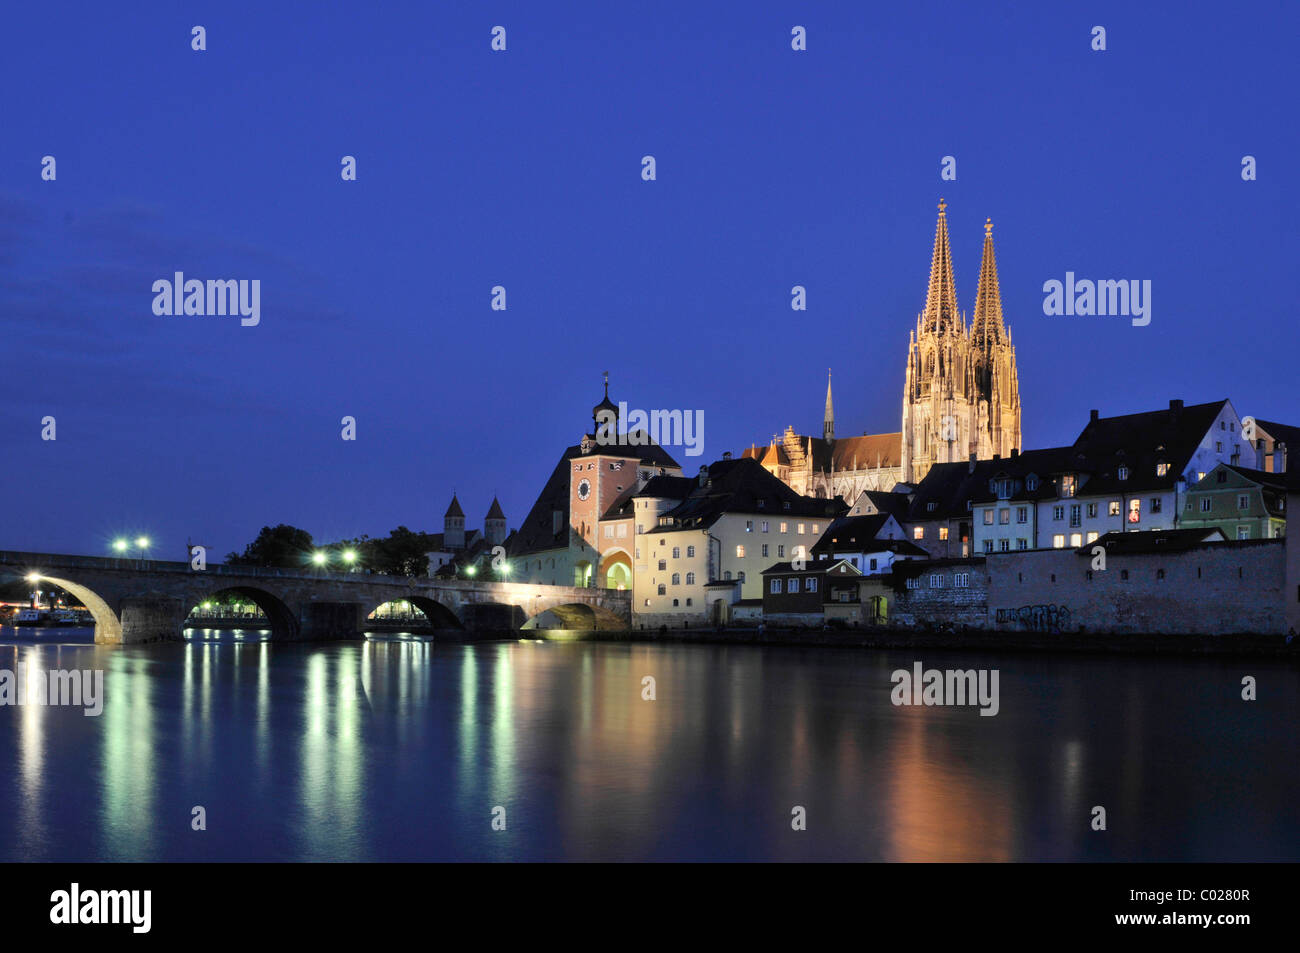 View over the Danube the Steinere Bruecke bridge, bridge gate, Regensburg Cathedral of St. Peter, old town - Stock Image